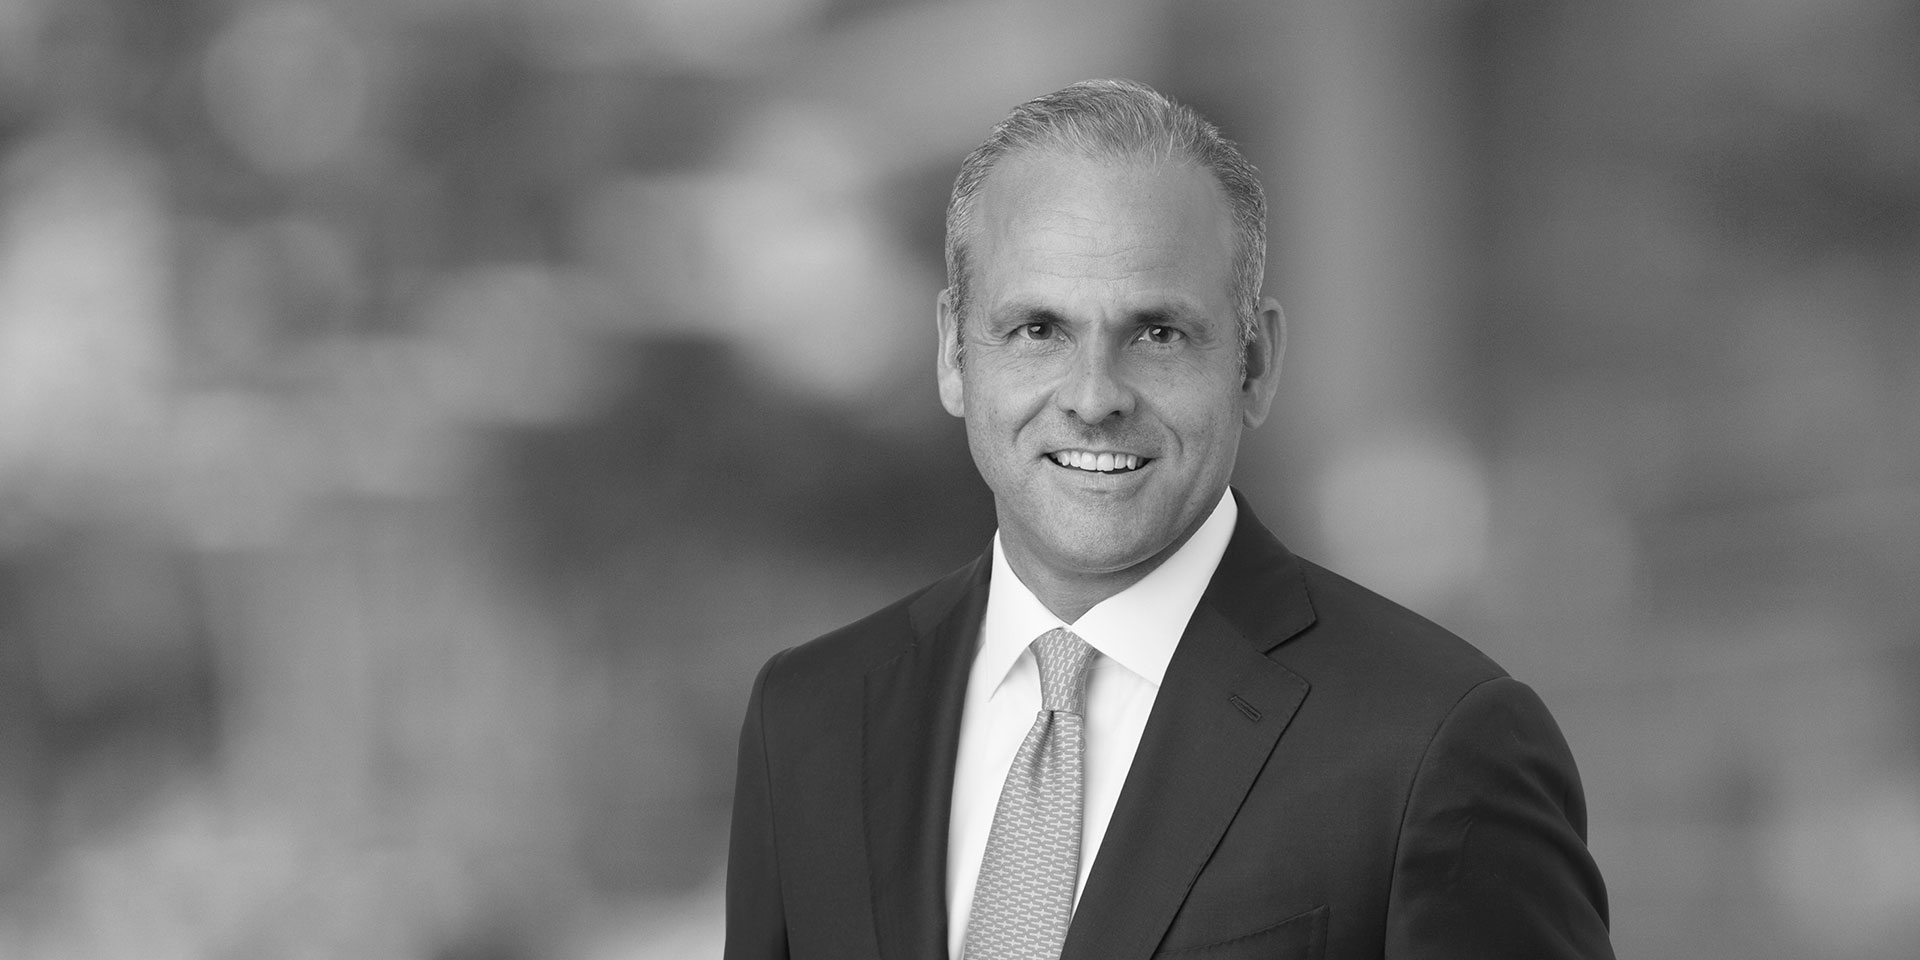 Eric Leicht | White & Case LLP International Law Firm, Global Law Practice